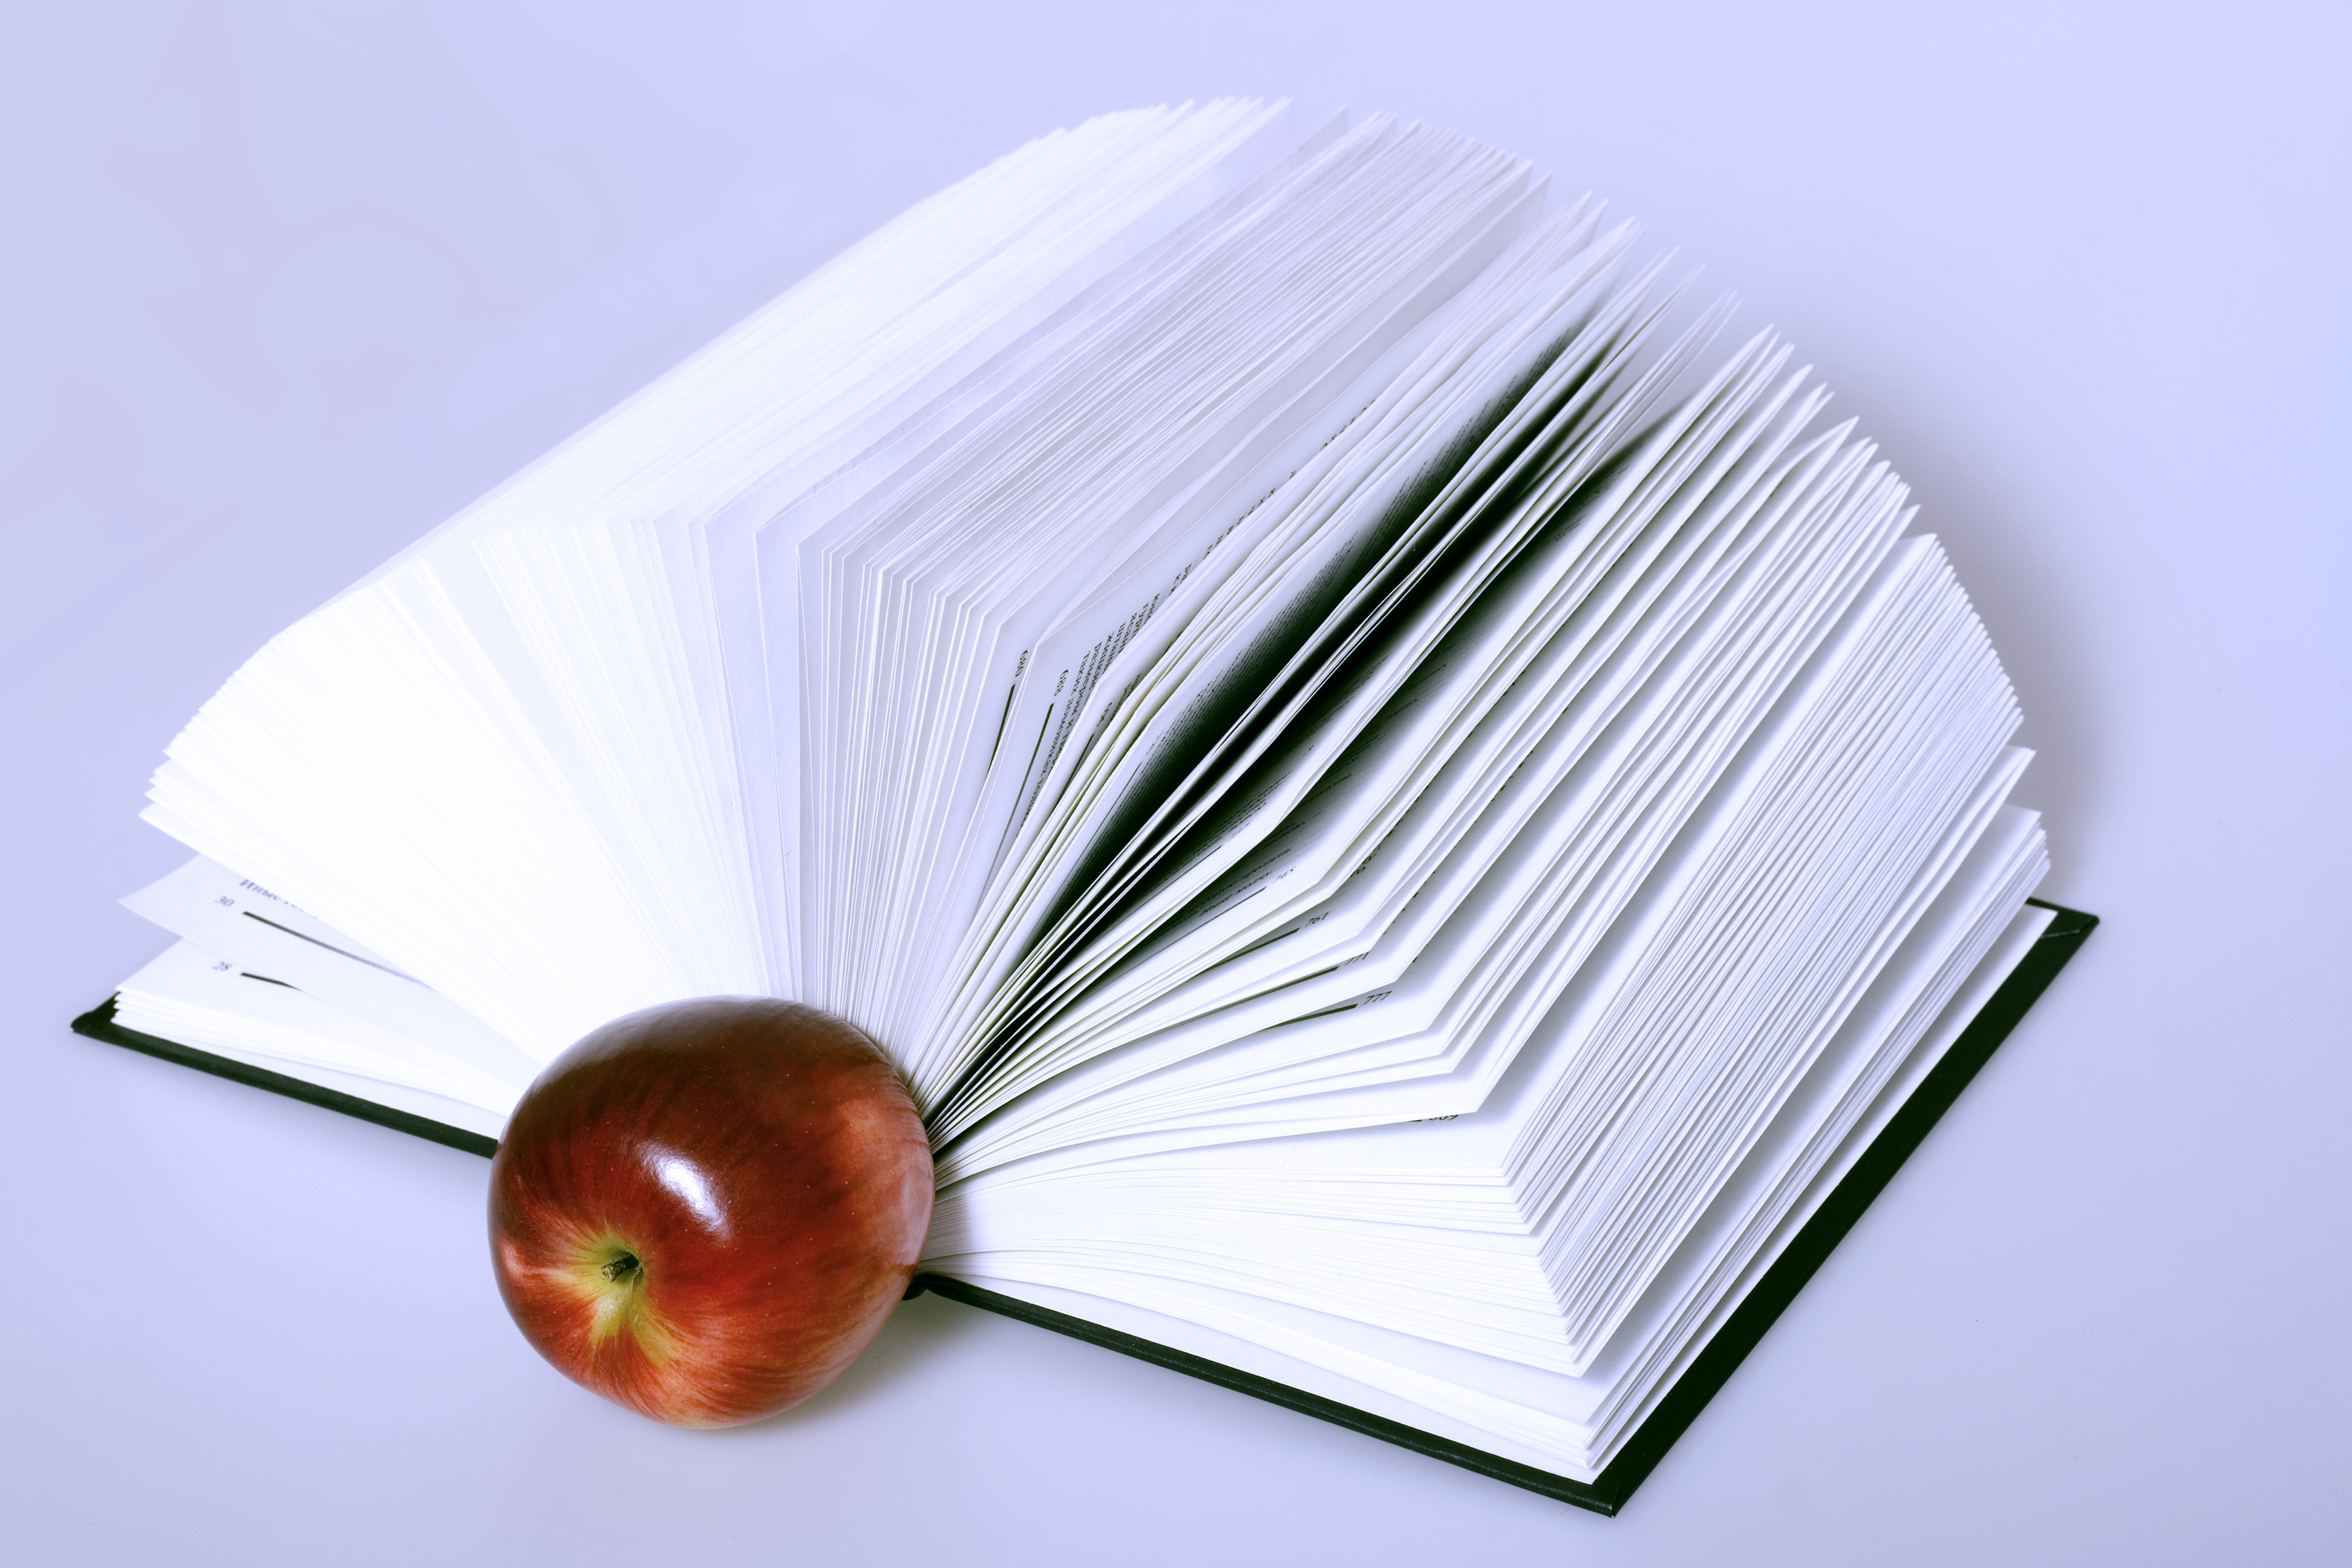 book and apple, Apple, Book, Closeup, Dictionary, HQ Photo